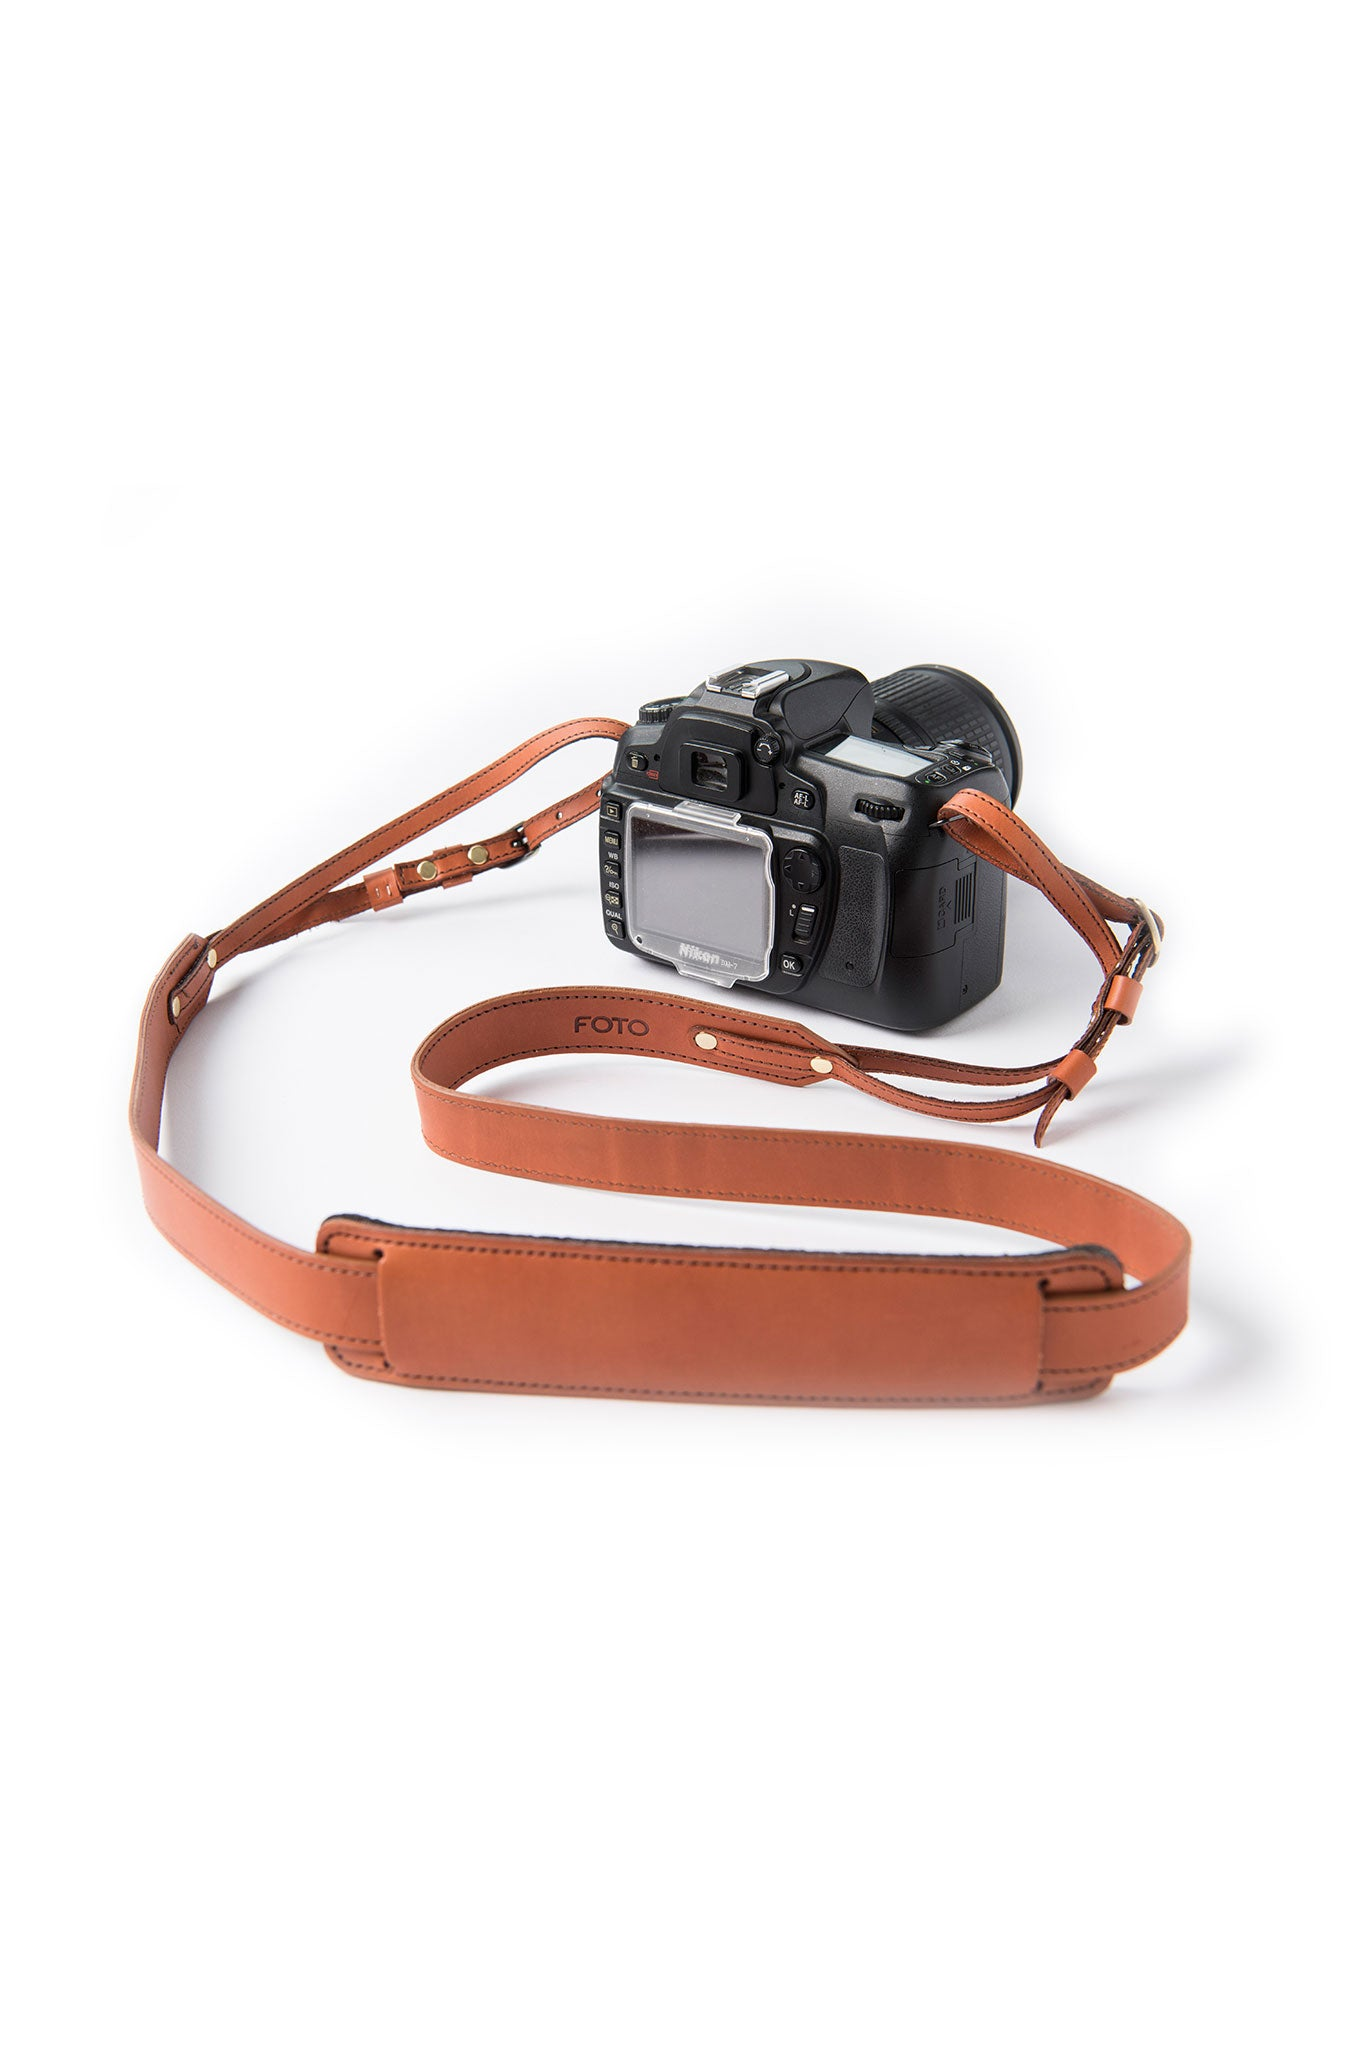 FOTO | The Skinny Cognac for Him - a cognac brown genuine all-leather skinny camera strap that can be personalized with a monogram or business logo, making this leather camera strap the perfect personalized gift.